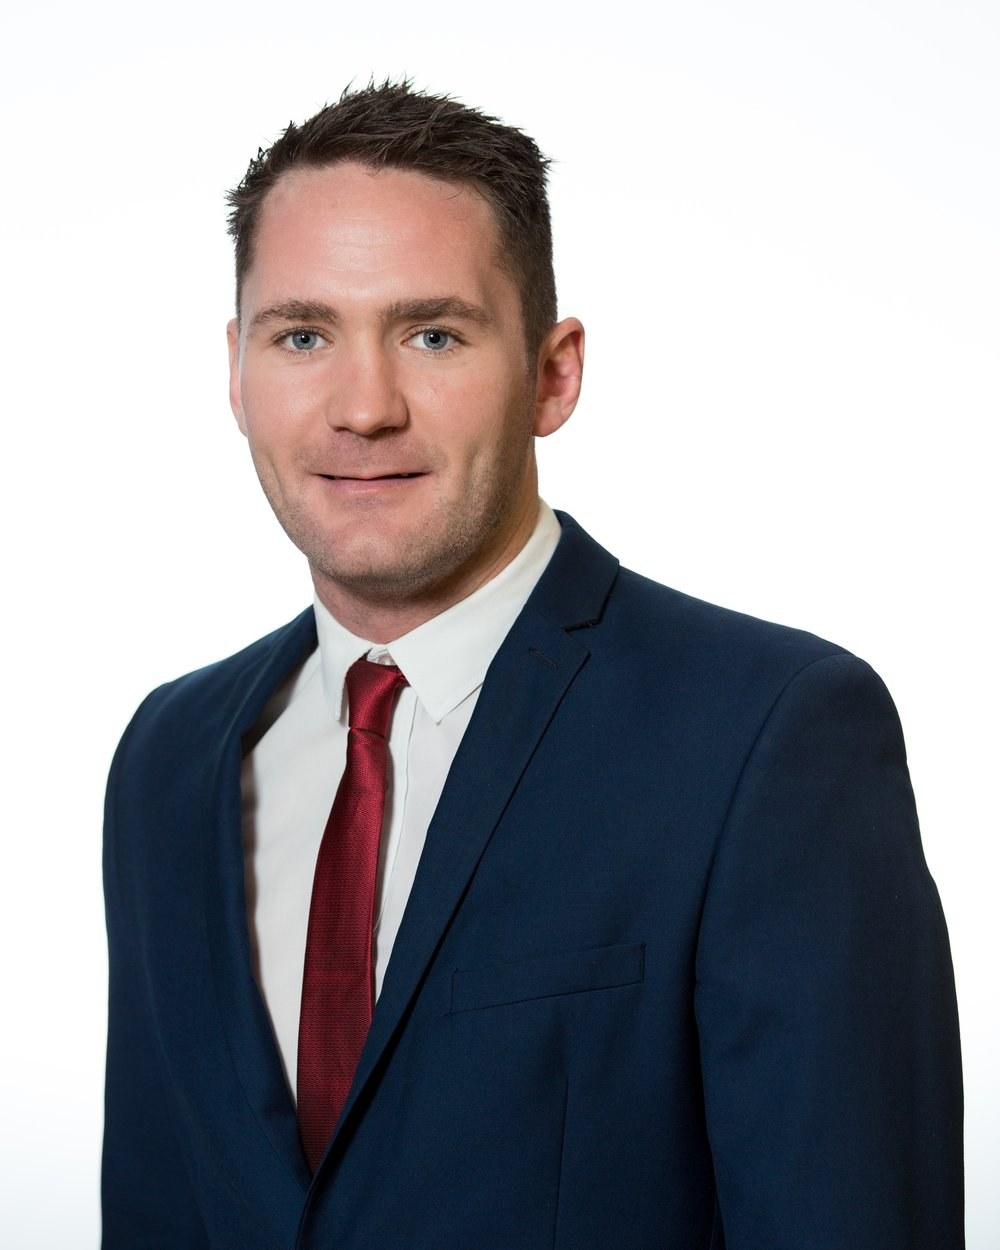 MARTIN GOHERY - STRUCTURAL ENGINEER